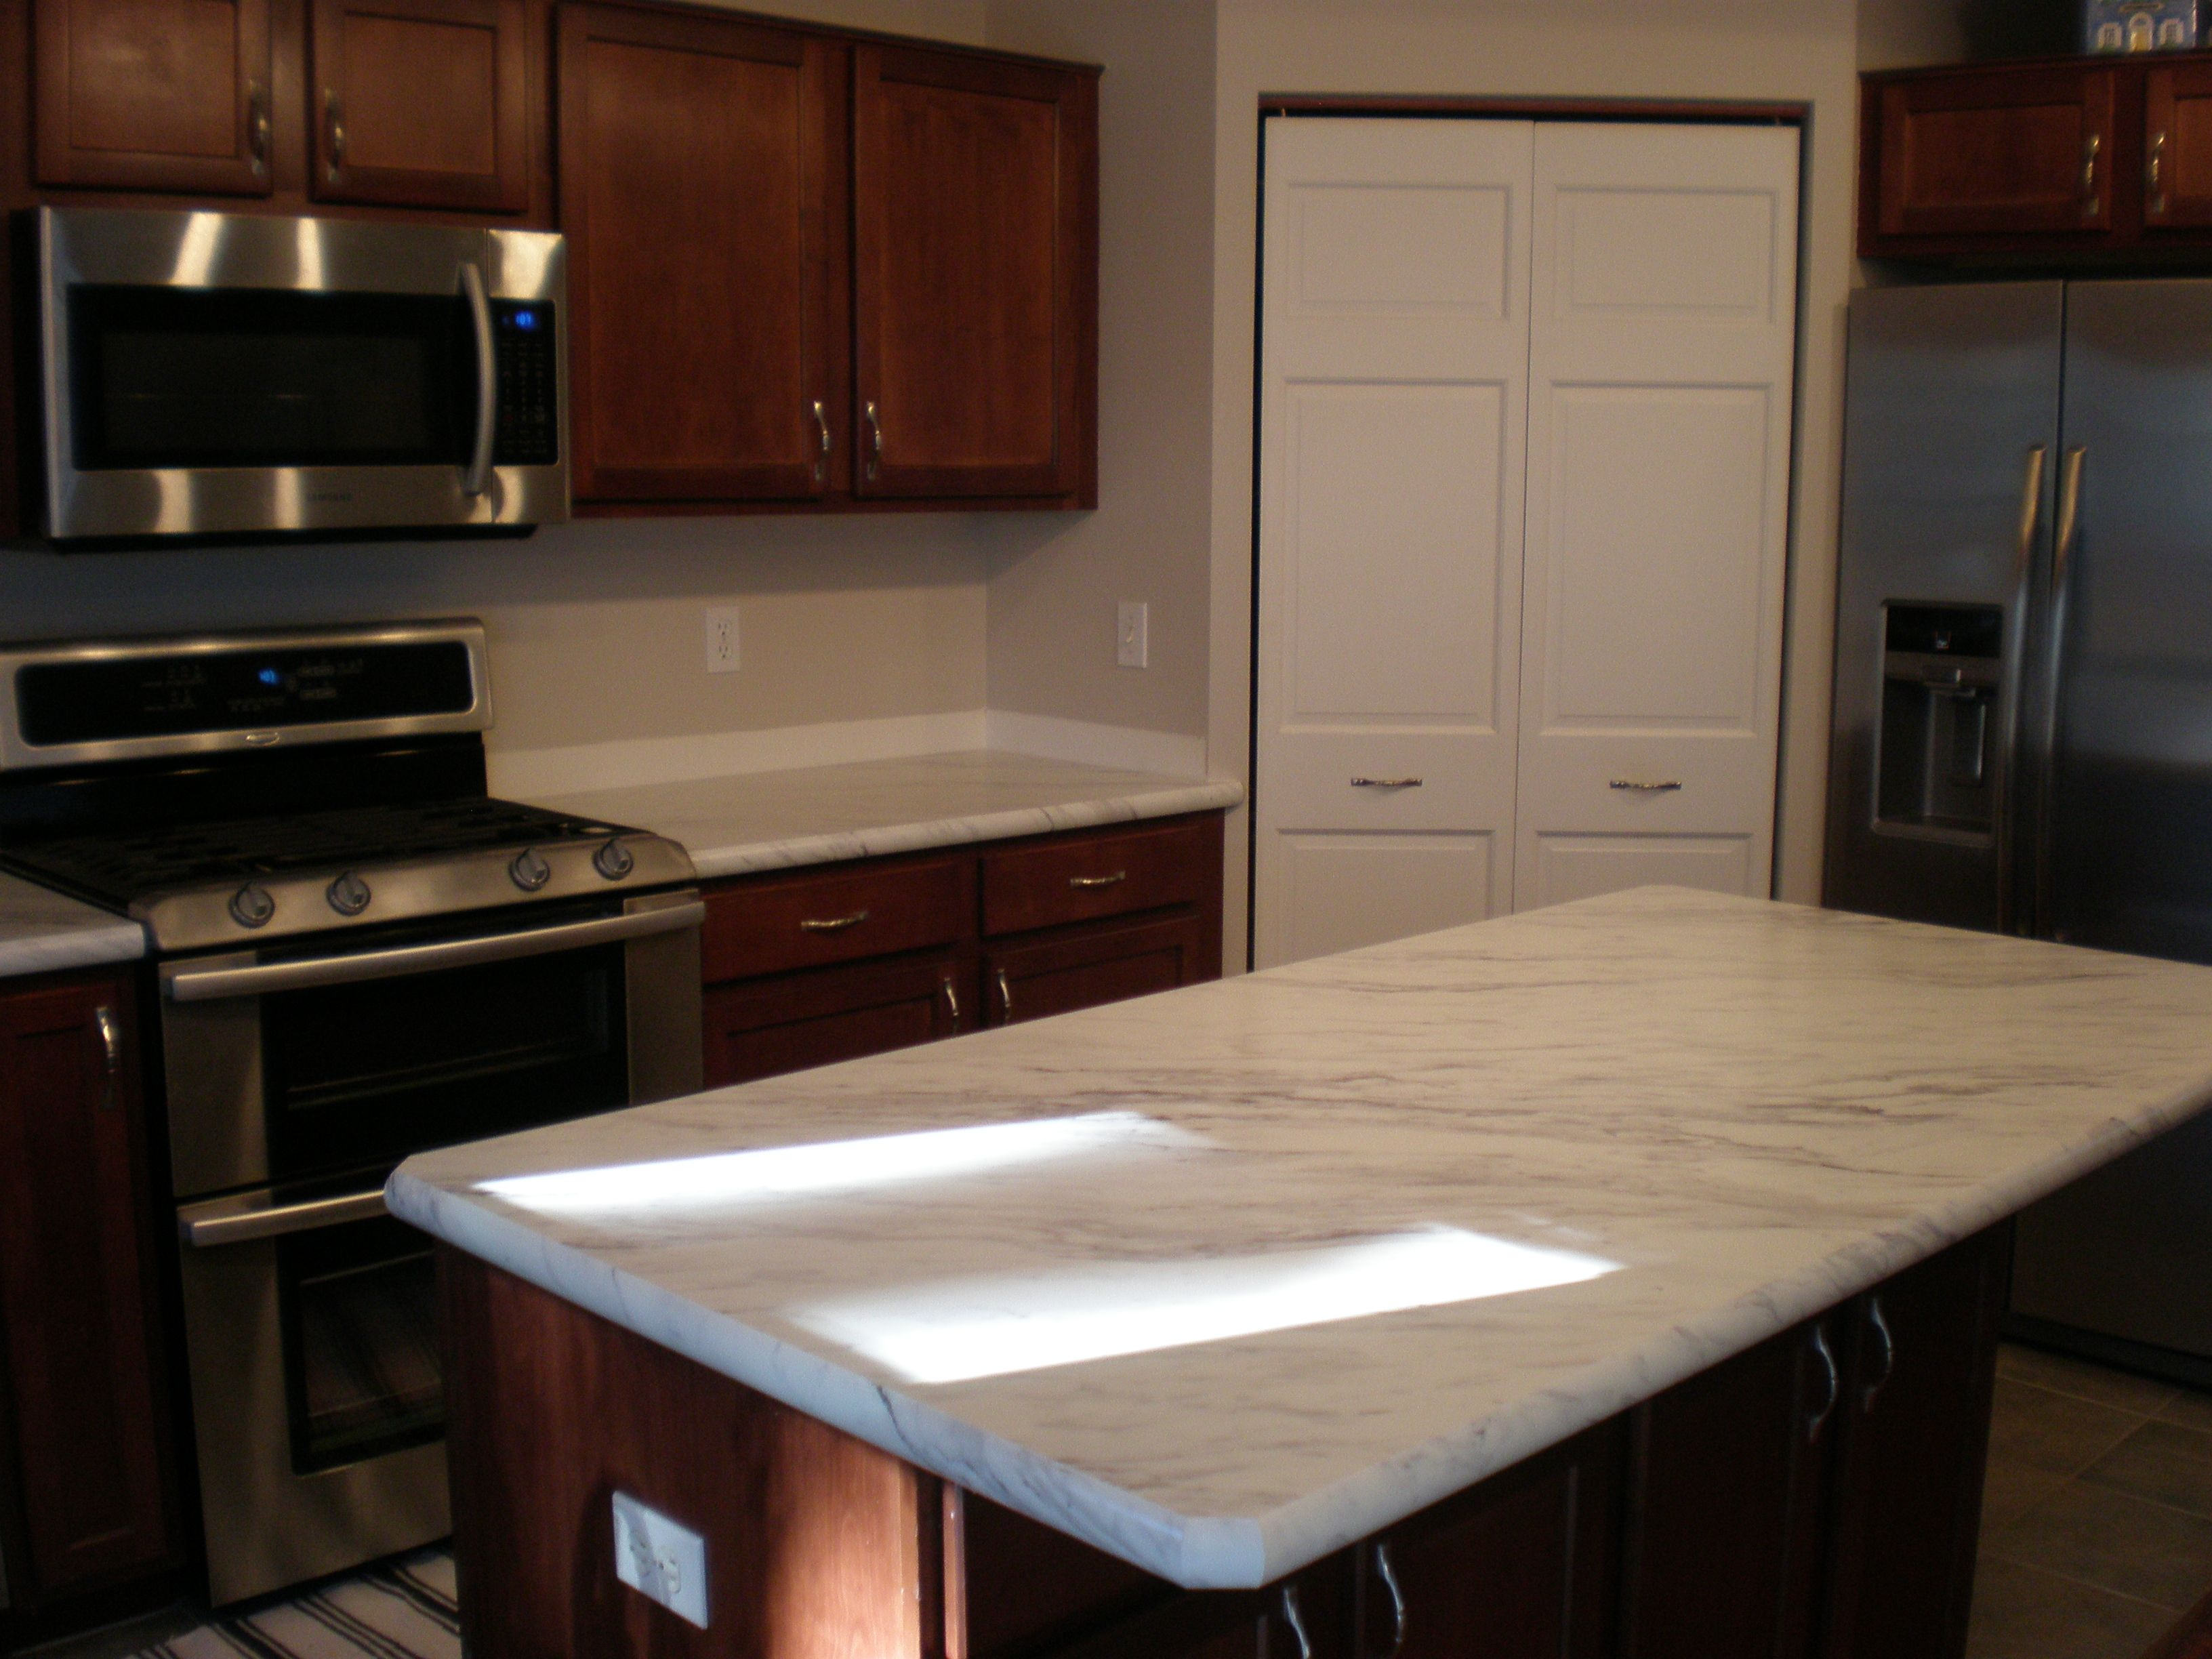 Calcutta Marble Laminate Countertop My New Countertops Have Transformed My Kitchen At A